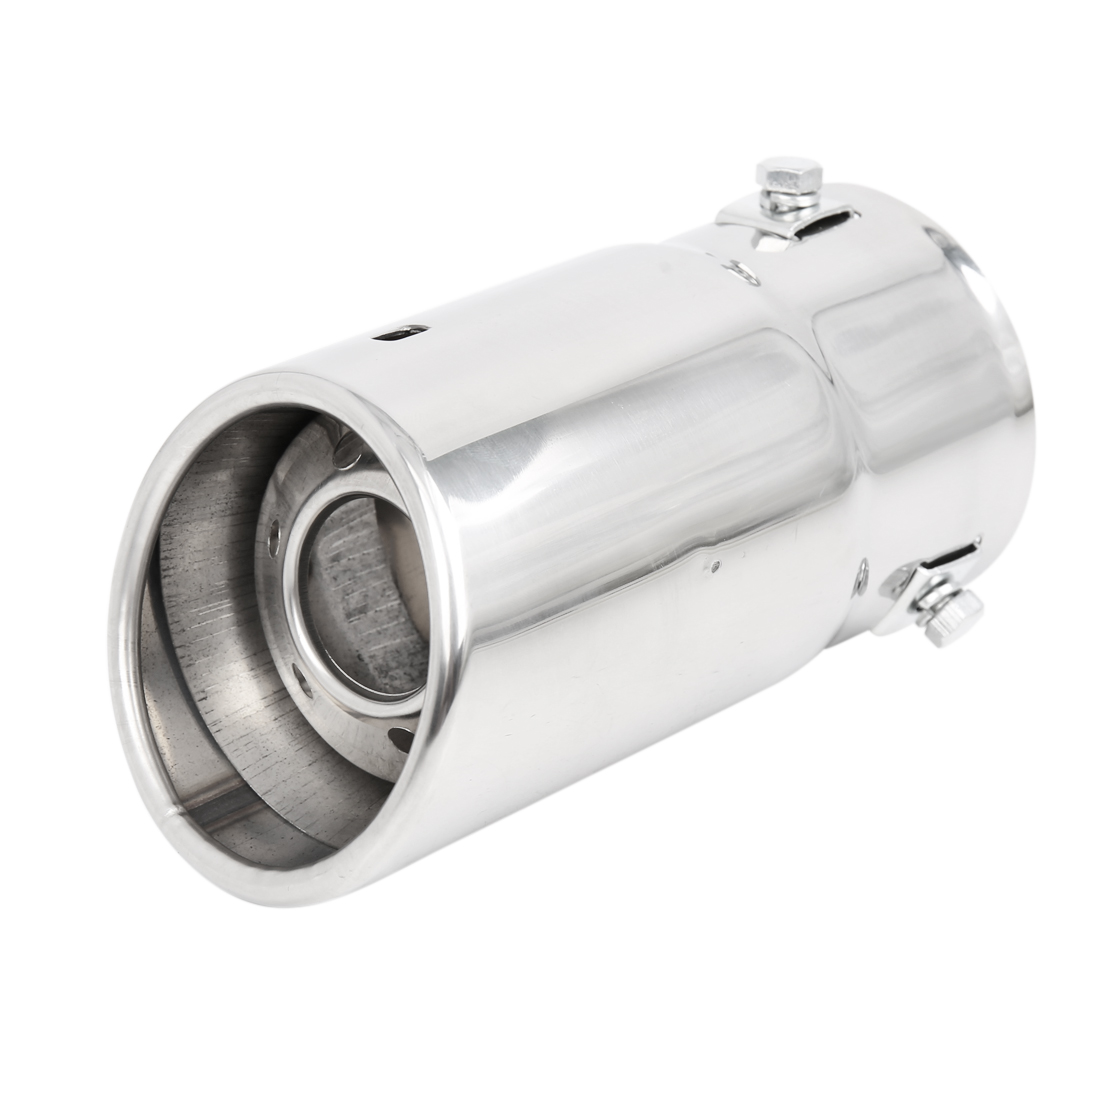 "Universal Fits Car Stainless Steel Chrome Round Exhaust Tail Muffler Tip Pipe Fit Diameter 1 1/2"" to 2 1/4"""